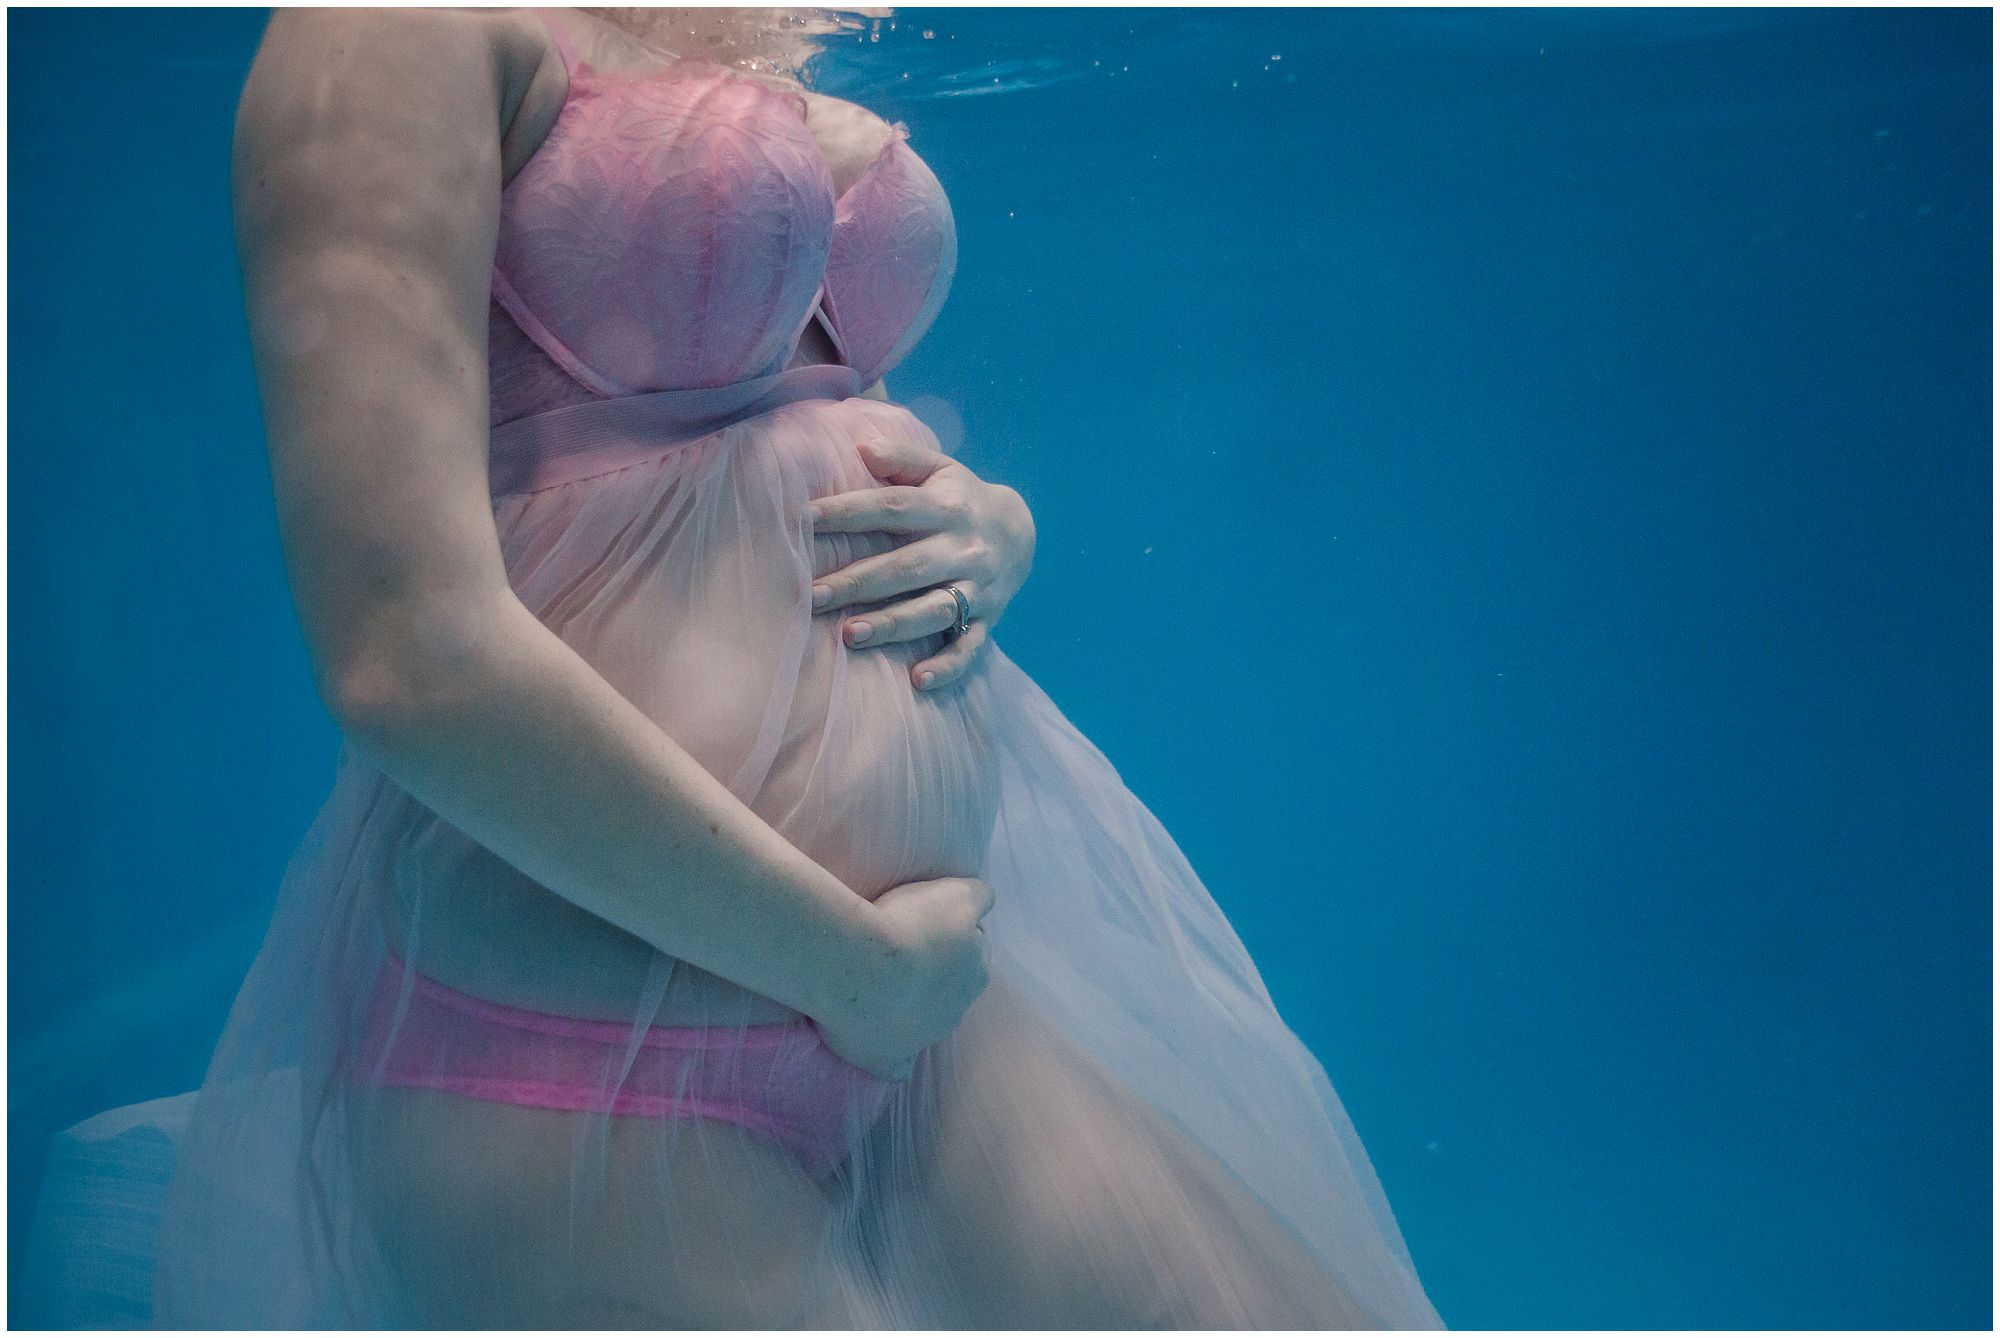 Denver's underwater maternity photographer